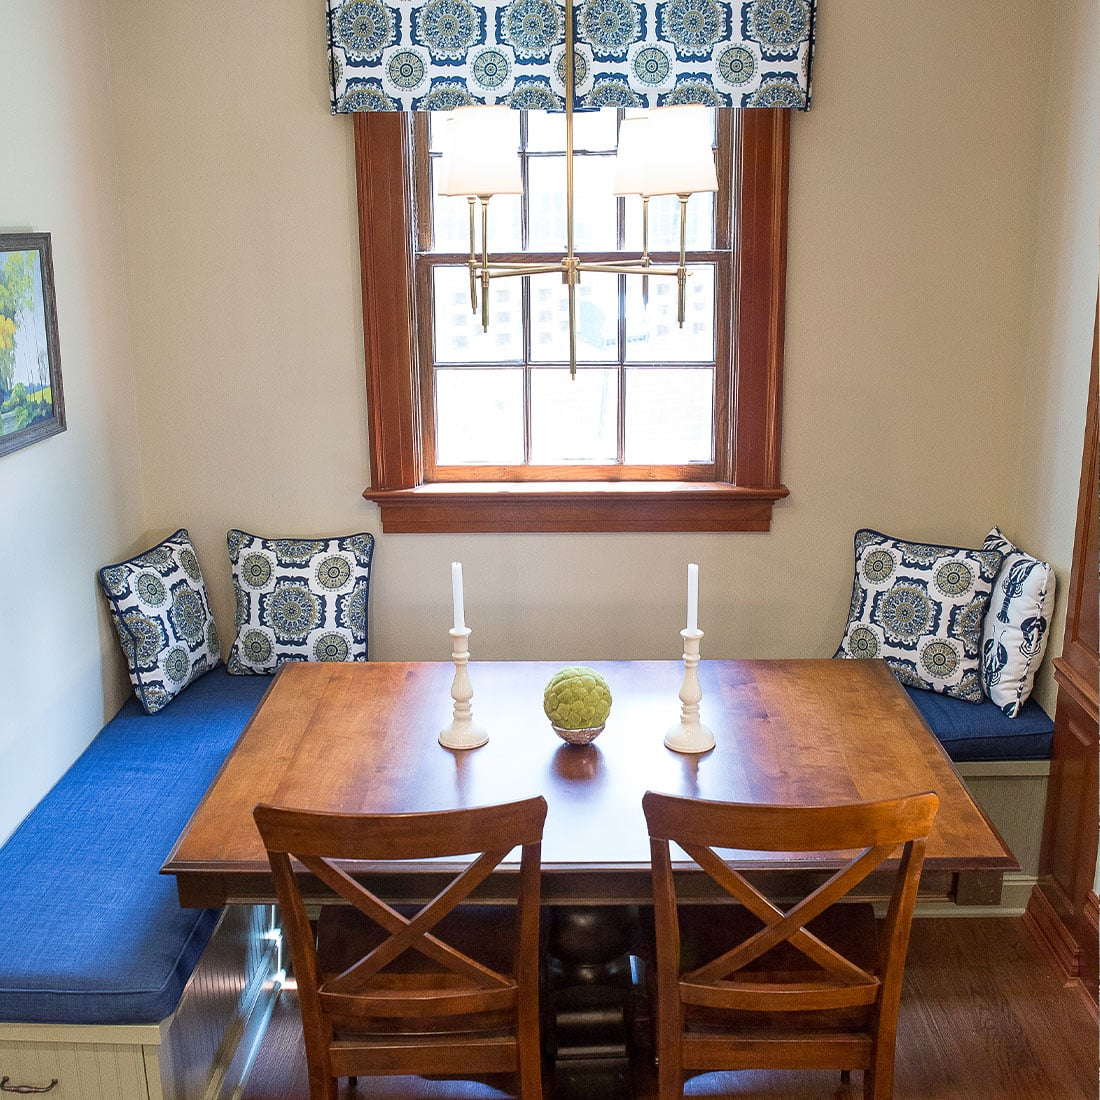 Breakfast nook with matching pillows and curtian